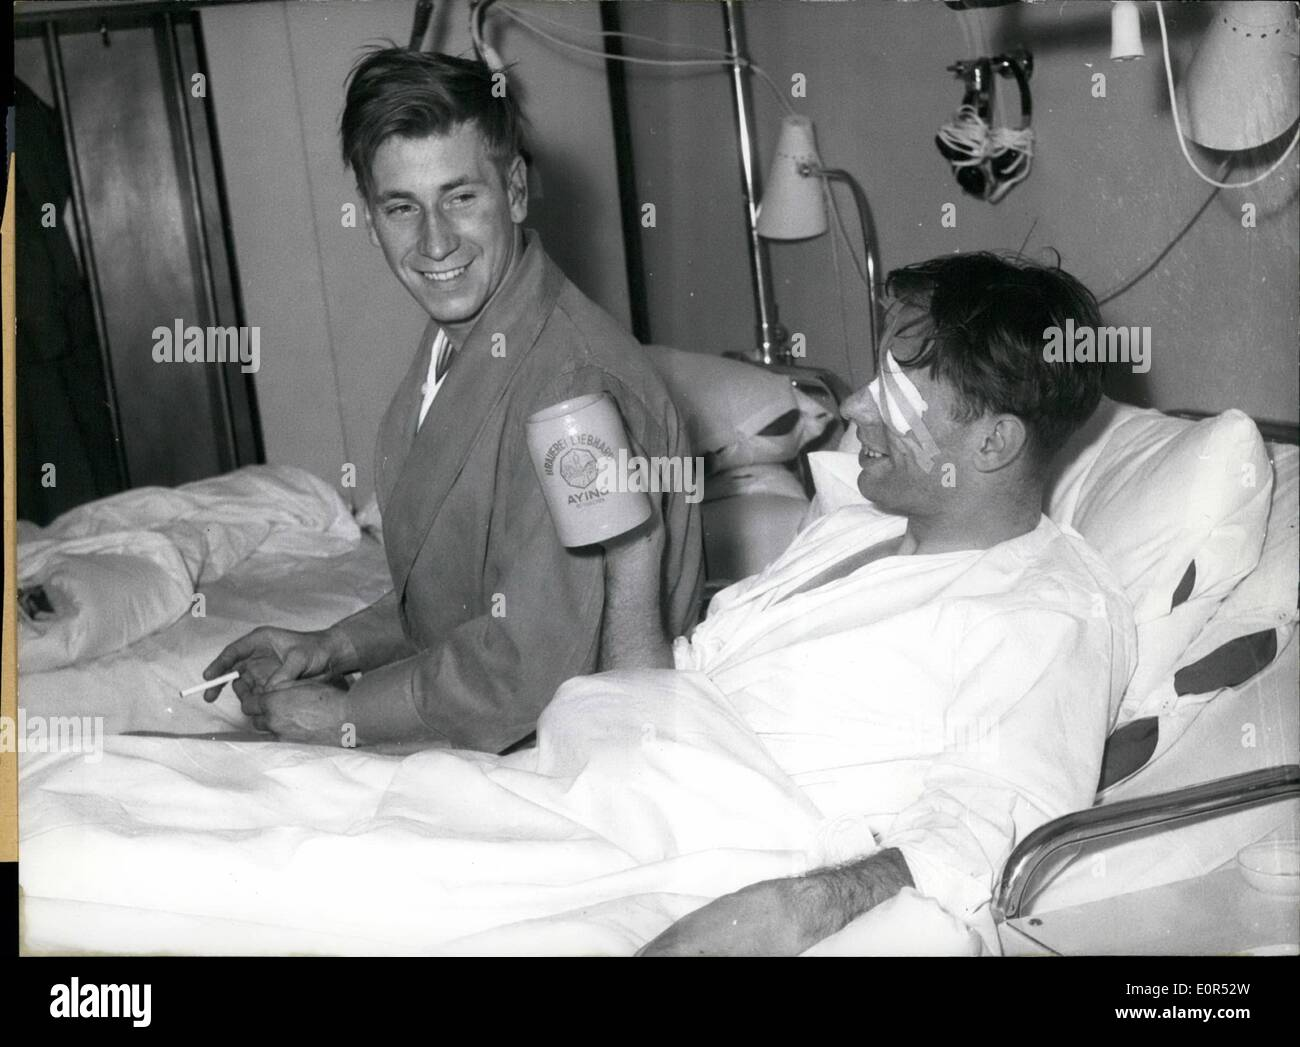 Feb. 02, 1958 - In the hospital at the right side of the Isar in Munich several injured members of the foot ball team Manchester United, injured at the aircraft's catastrophe at February 7,58 in munches- rime, already are on the way of recovery. Picture 1, Kwan Morgan sitting in a wheel chair on the way to the X-rays. Picture 2, Bobby Charlton already is drinking out of a genuine Bavarian beer - tankard. picture 3 , wood Raymond (left side) and Bobby Charlton(right side) already are able to laughs - Stock Image